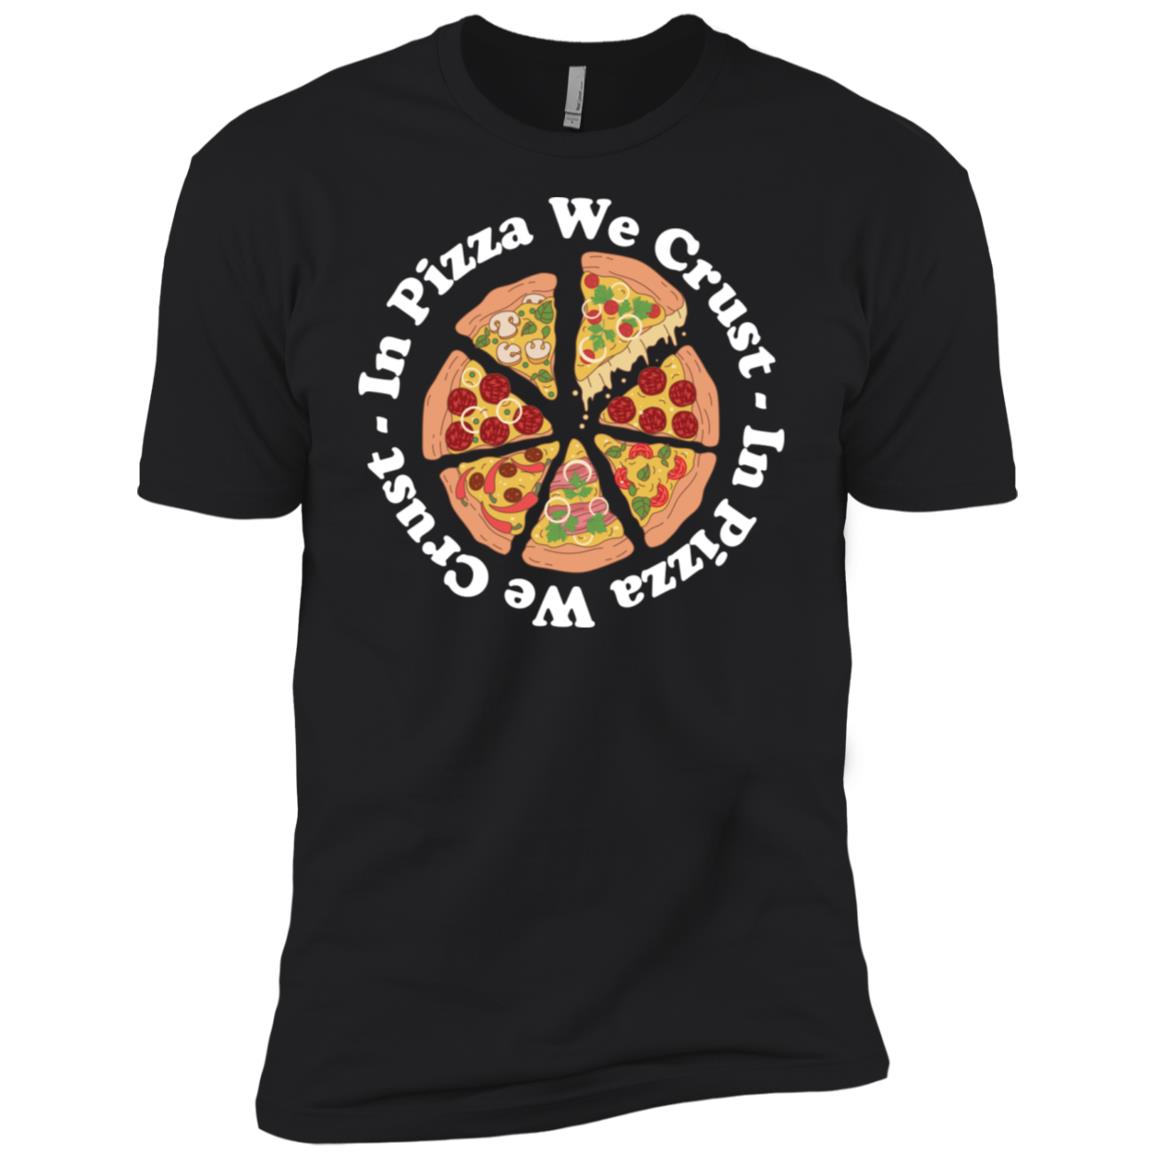 In Pizza We Crust Men Short Sleeve T-Shirt